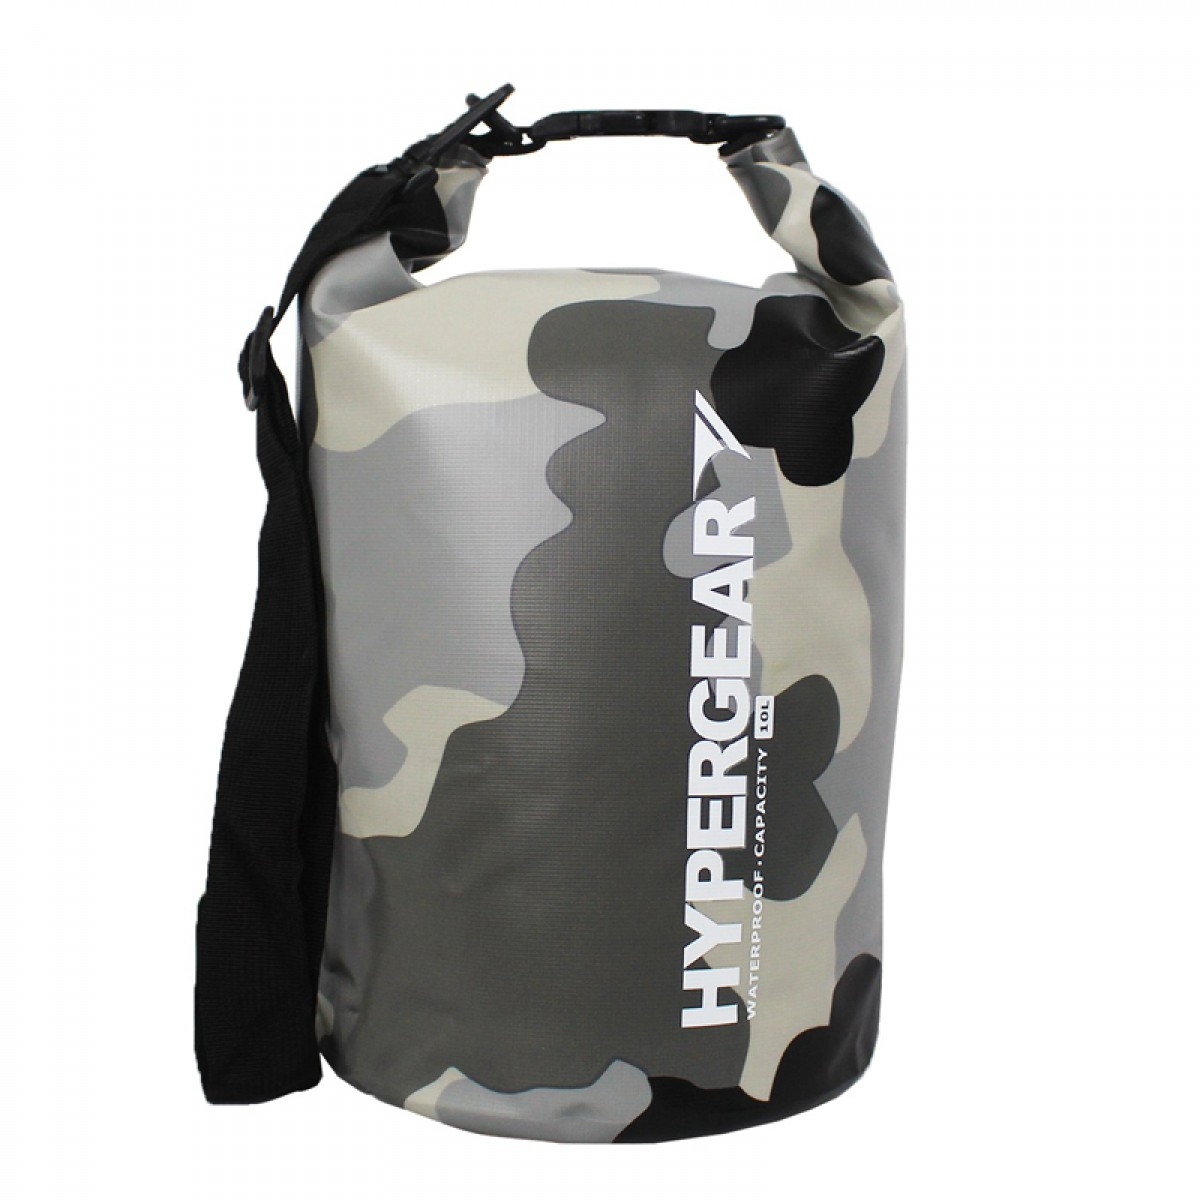 Hypergear Adventure Dry Bag 10 Liter Camo Grey Alpha